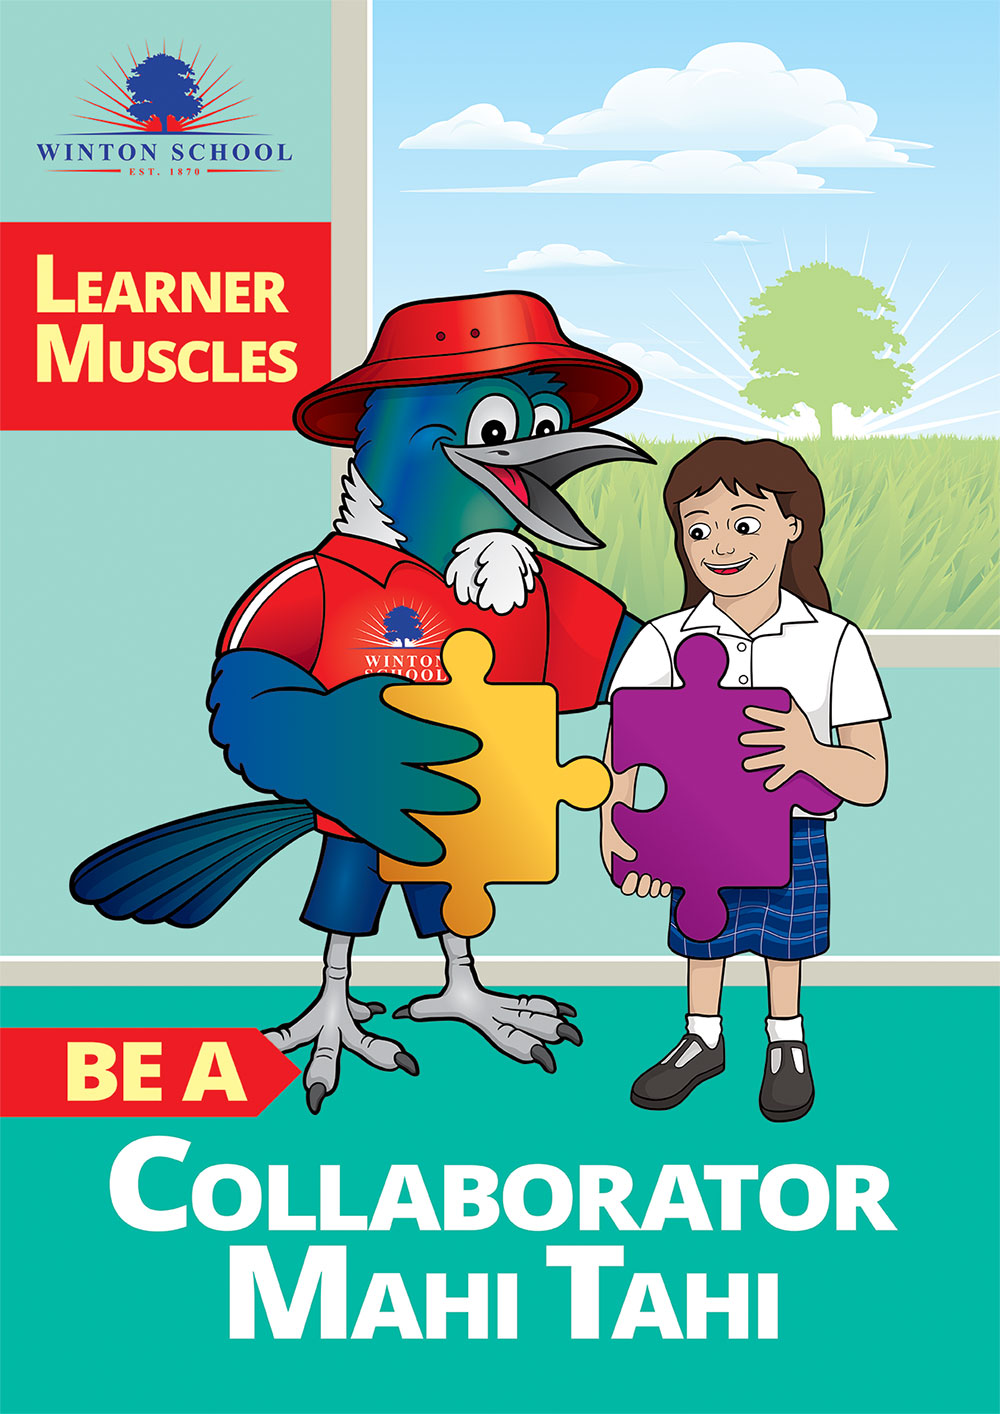 Winton School Collaborator Poster Southland NZ